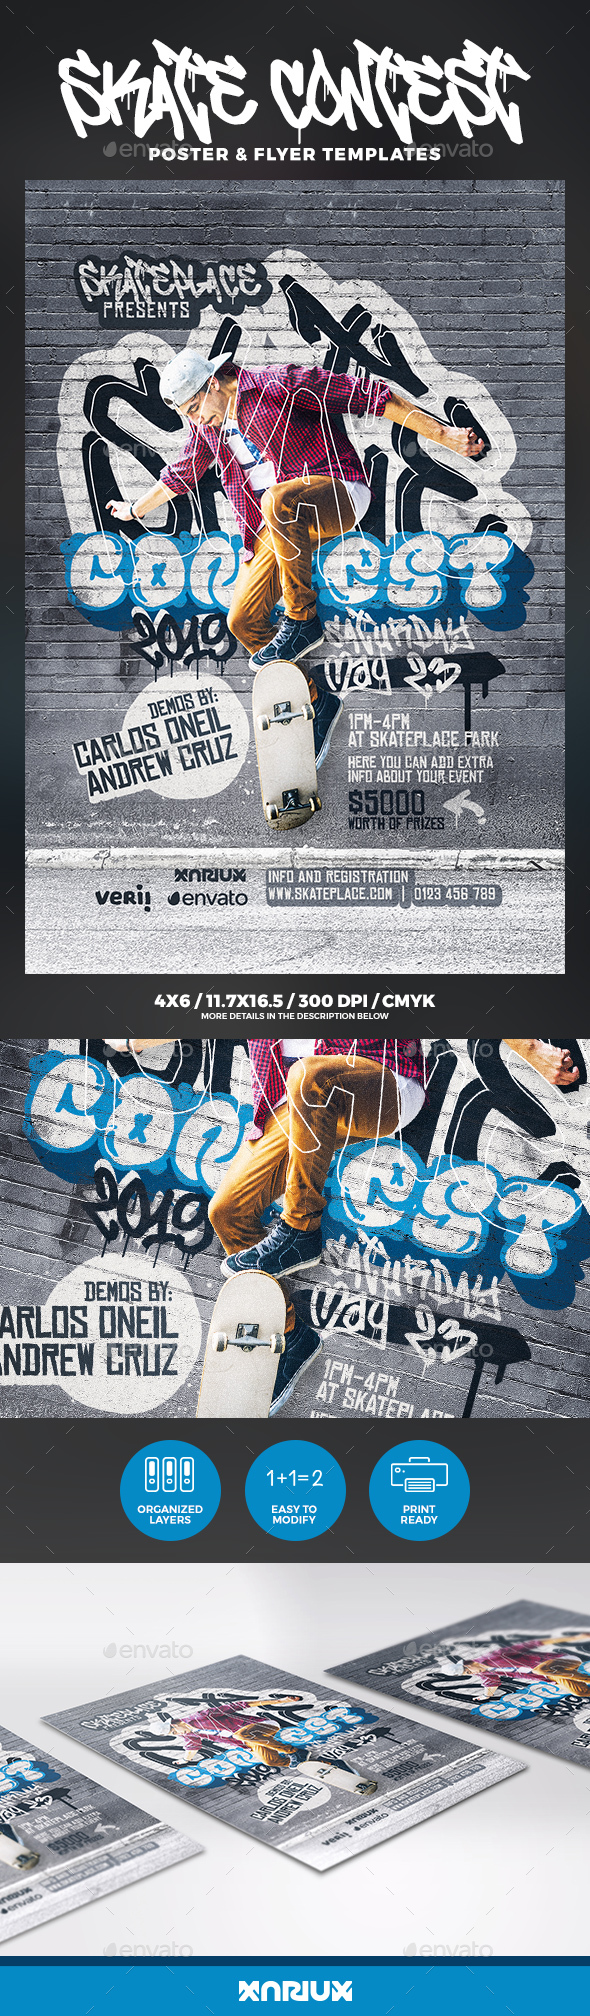 Skate Contest Flyer & Poster - Sports Events